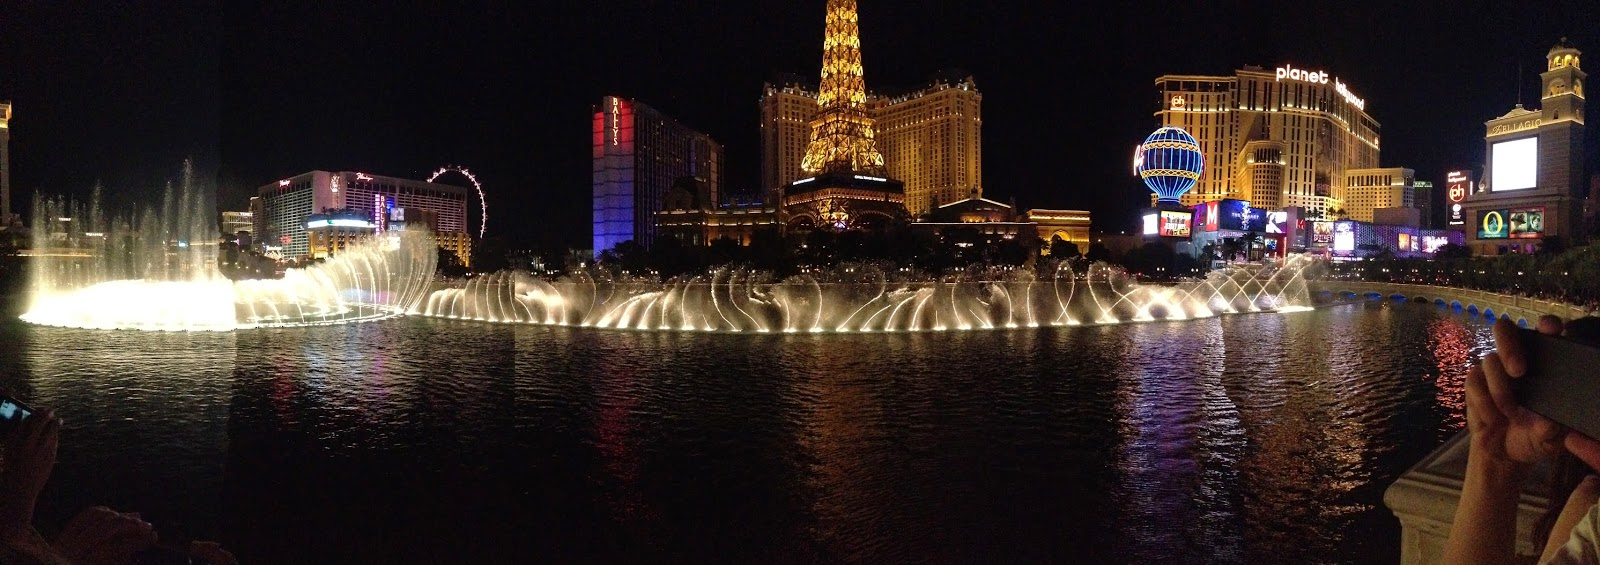 Nautical by Nature | Las Vegas trip recap